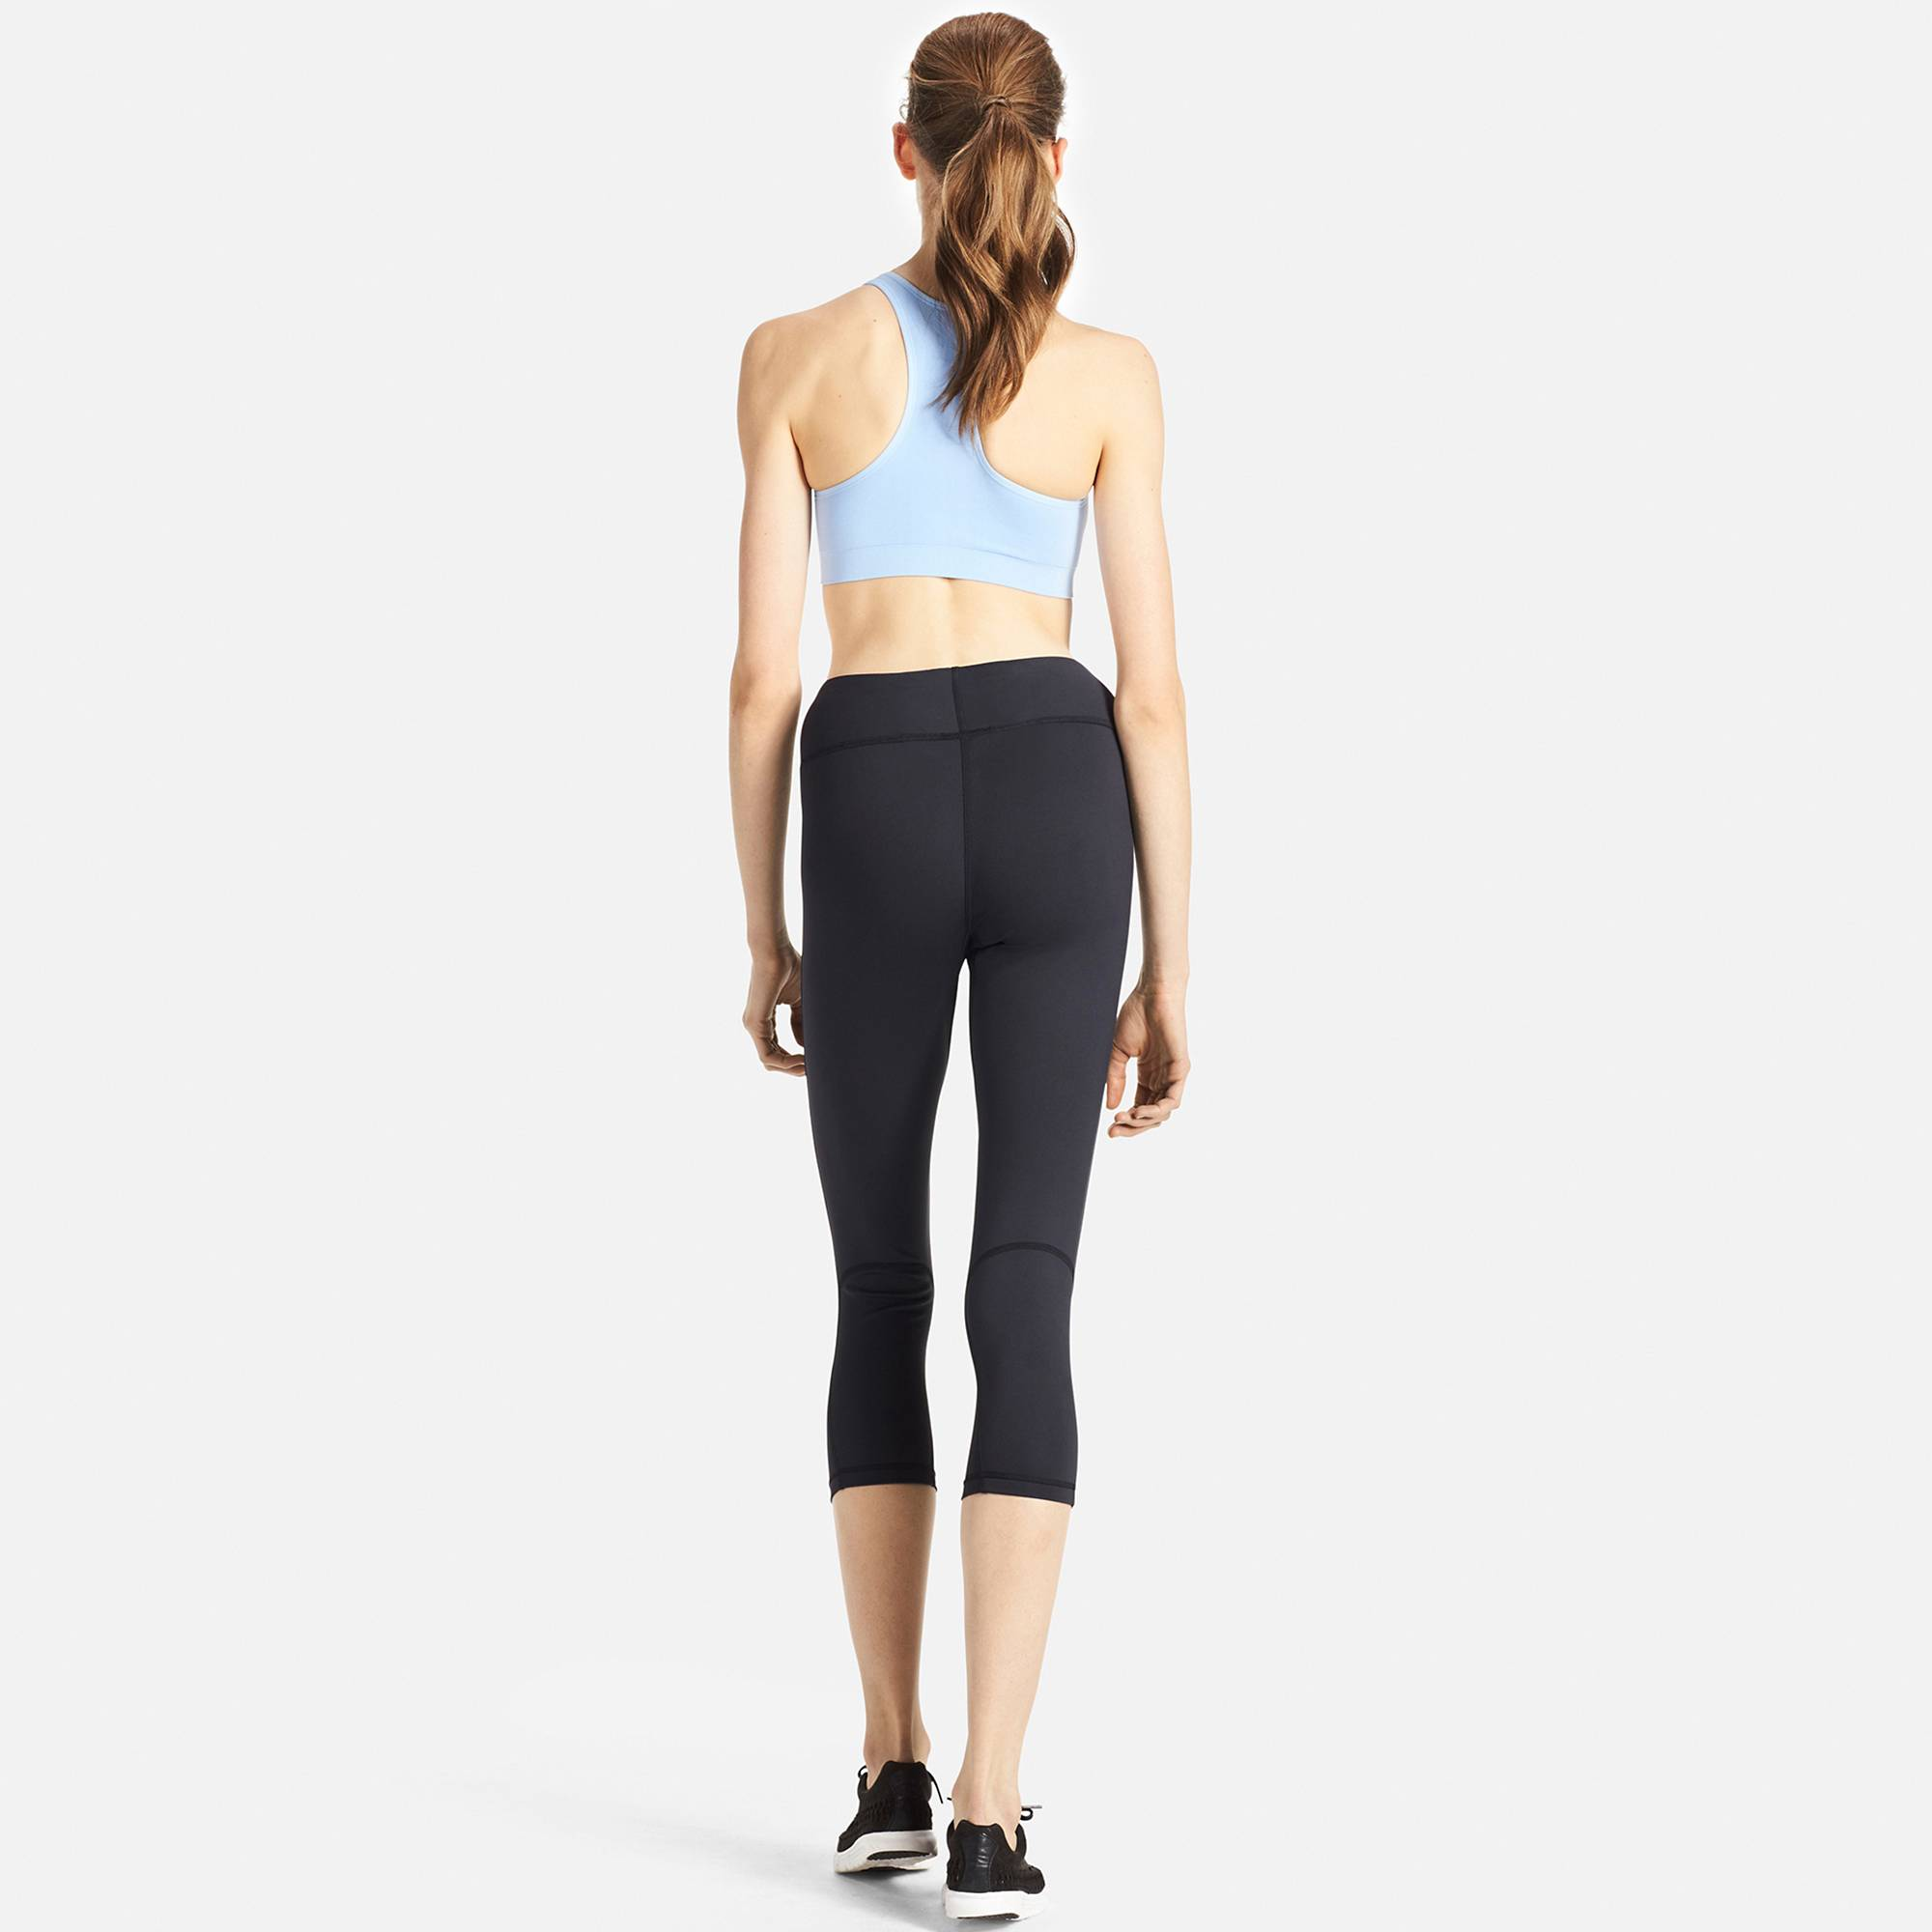 women airism cropped leggings, gray, small RLERCGG